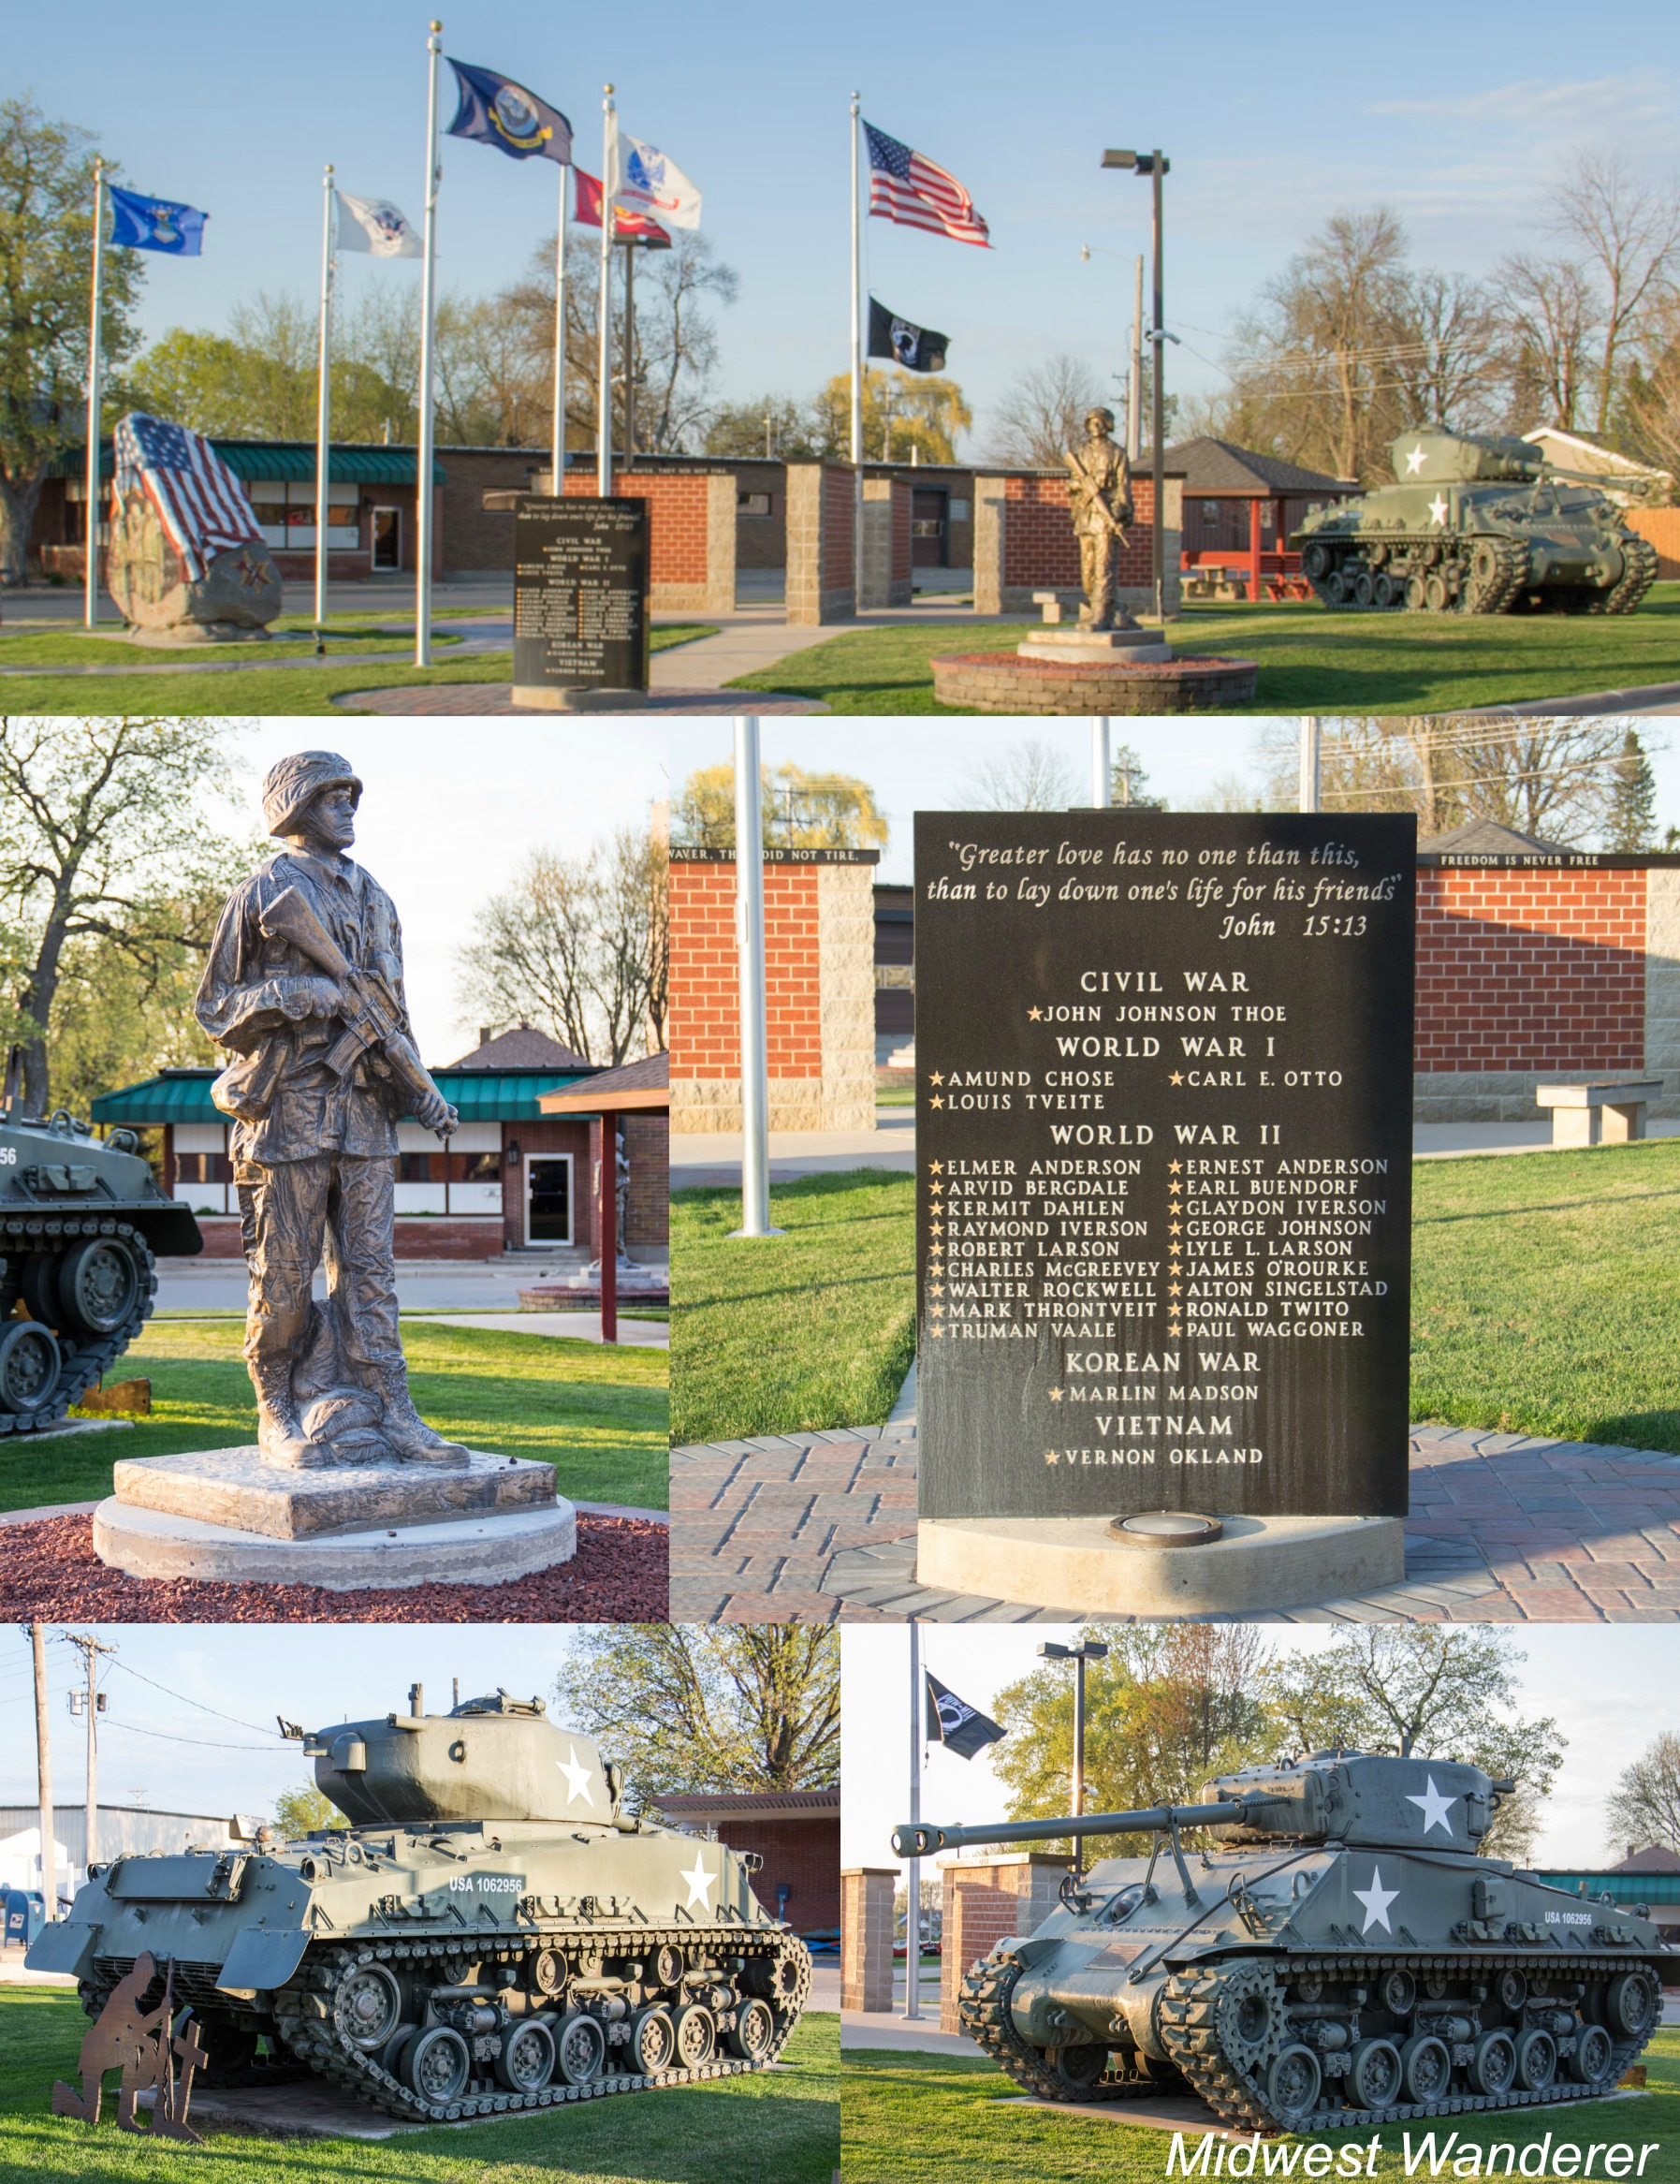 Veterans Memorial - Lake Mills Iowa